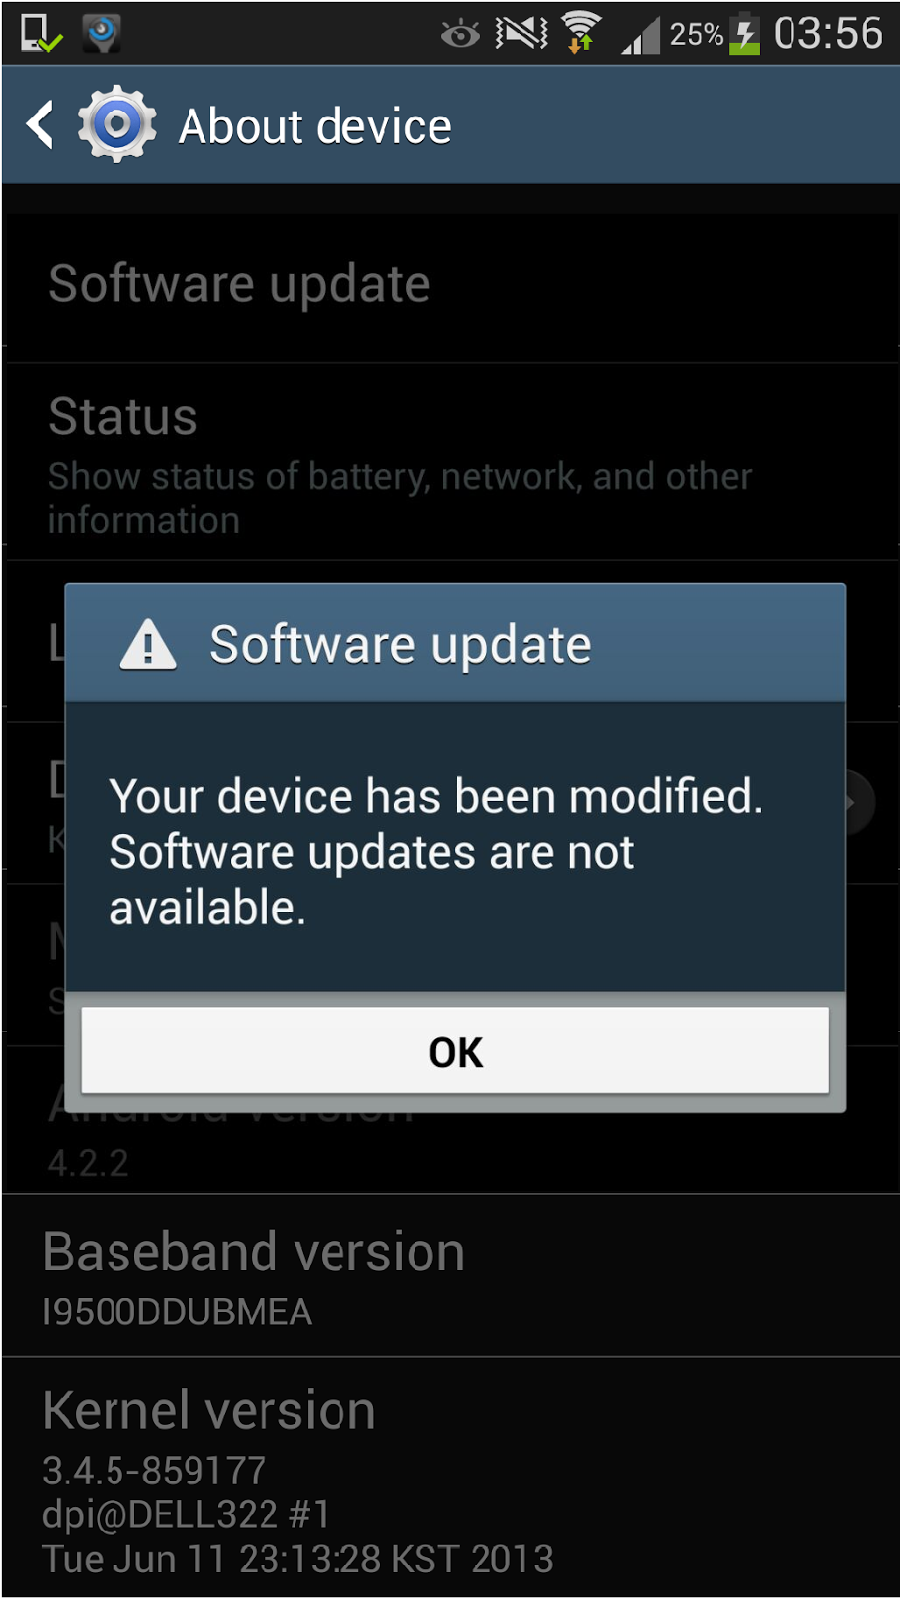 Phone Android Phone Upgrade Software my journey for knowledge solved your device has been modified software updates are not available error on non rooted android device